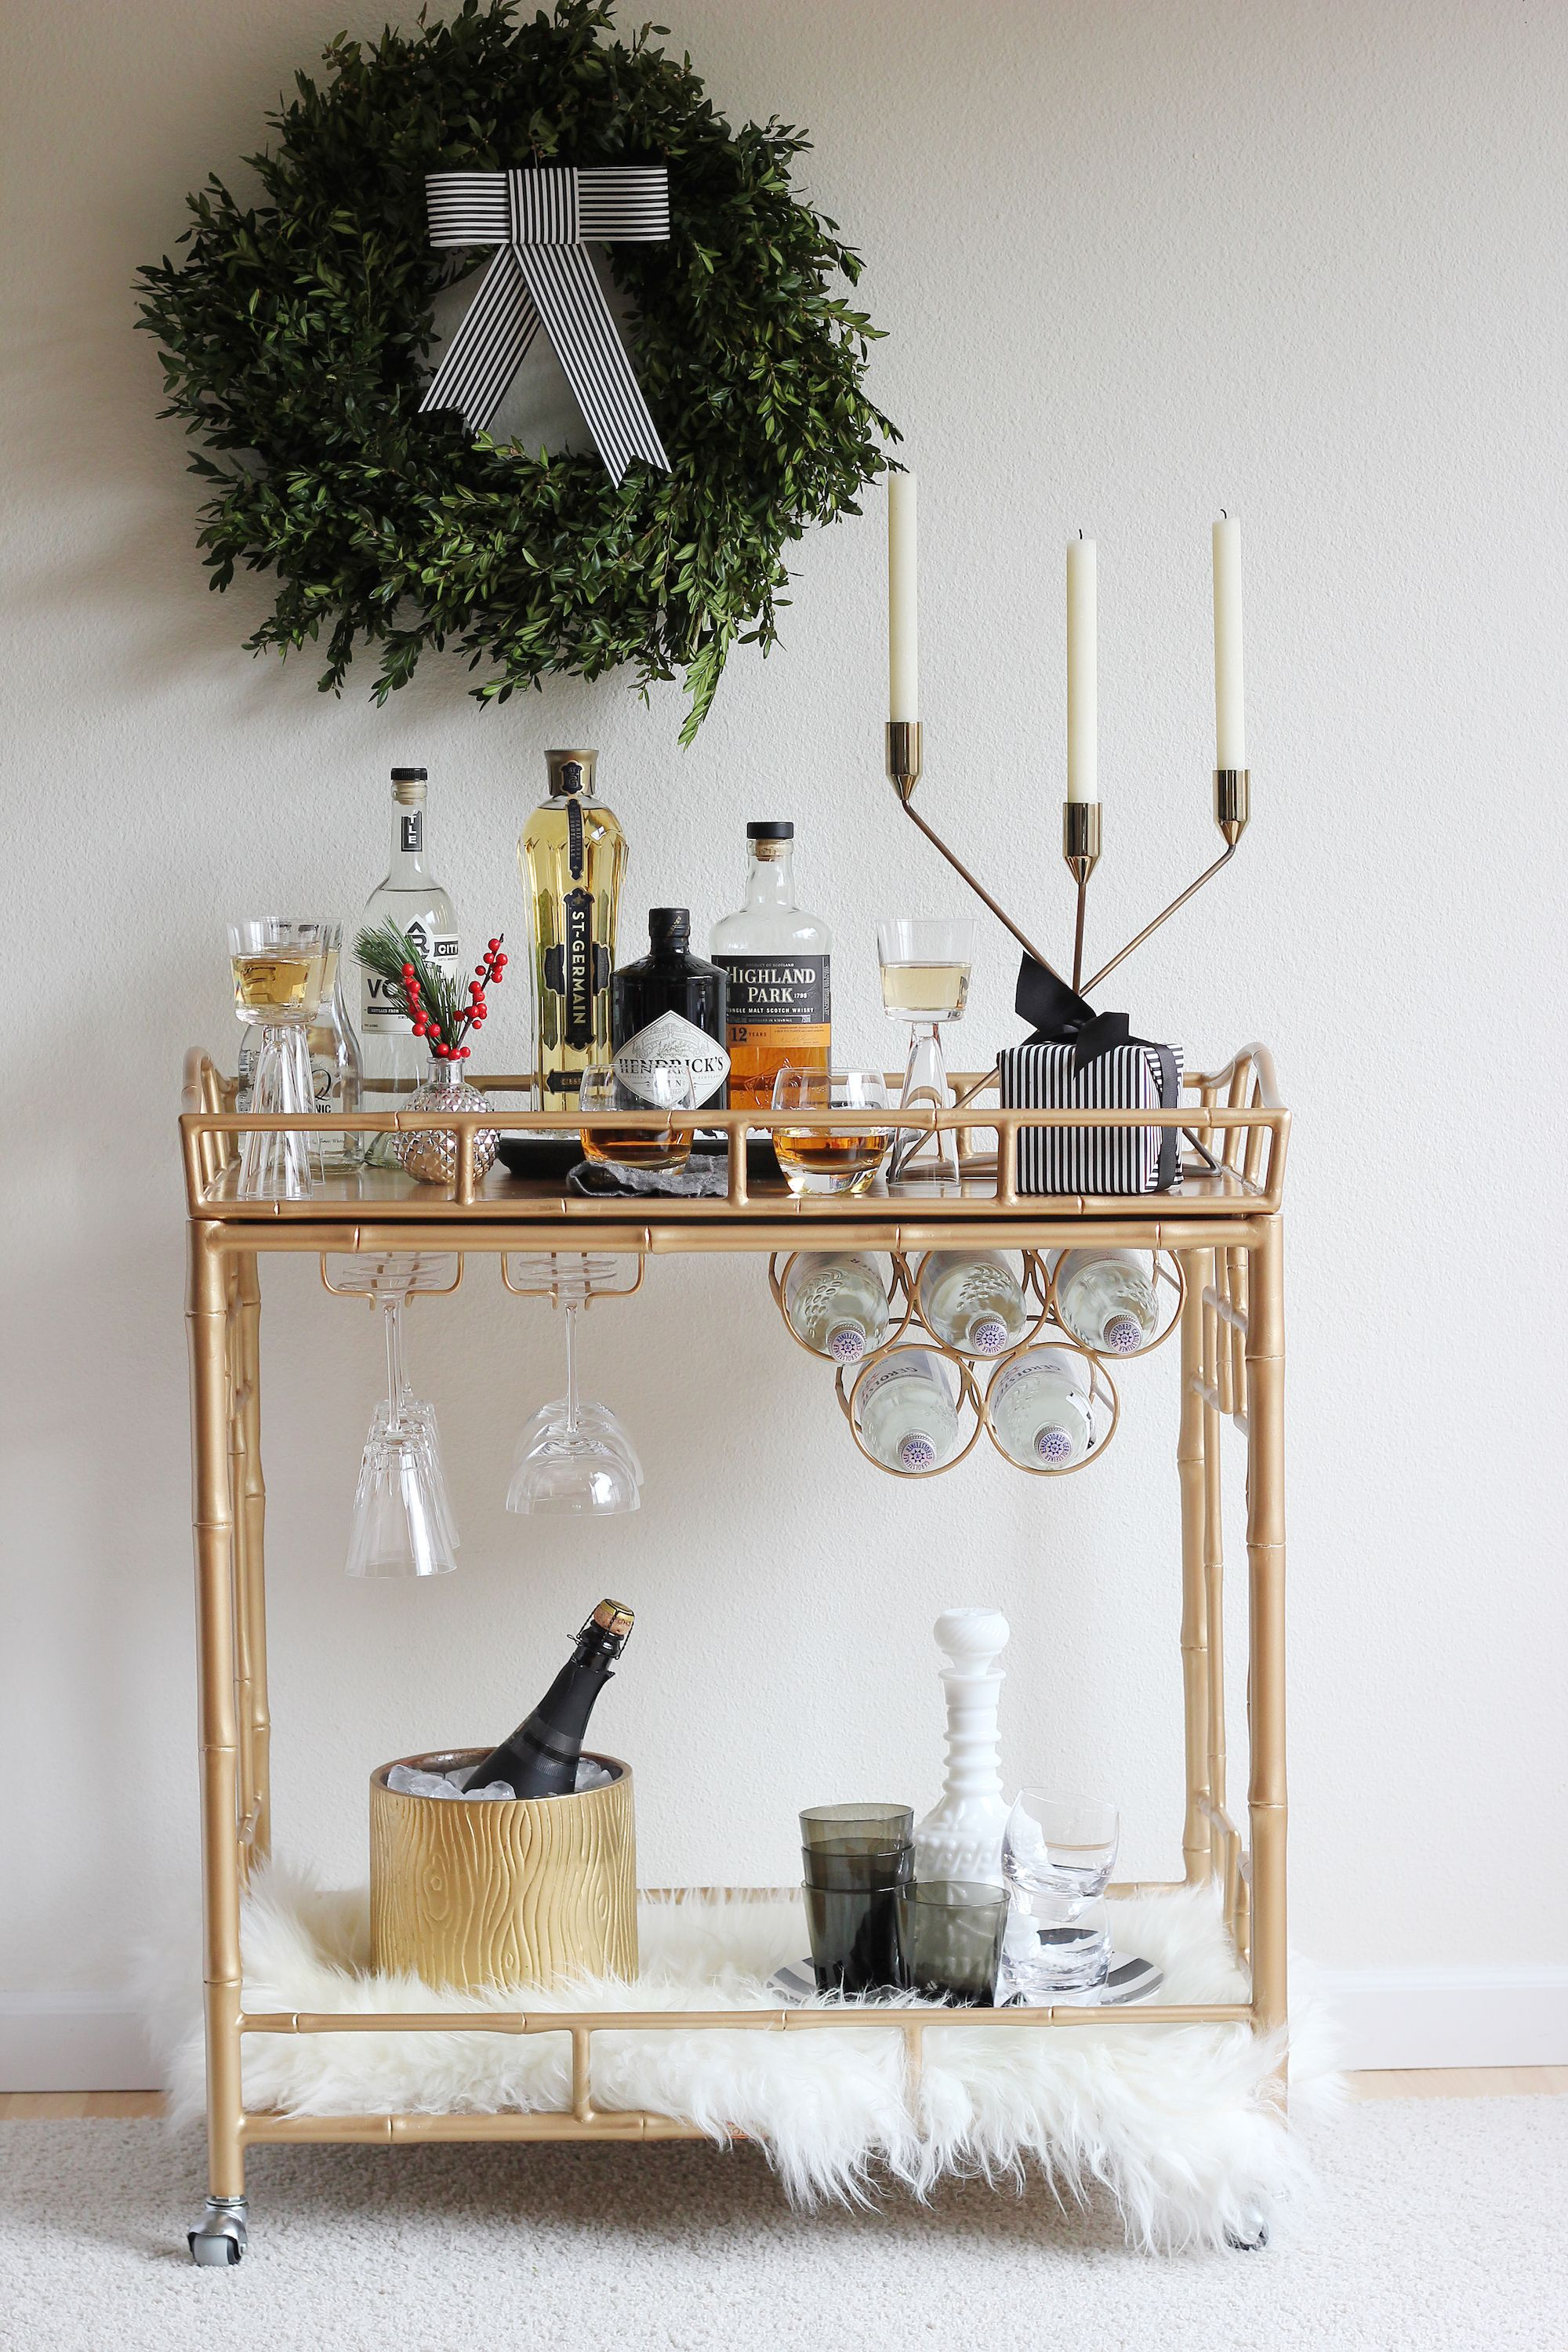 20+ Best Holiday Decorating Ideas For Small Spaces - Christmas Decor For  Small Space Living